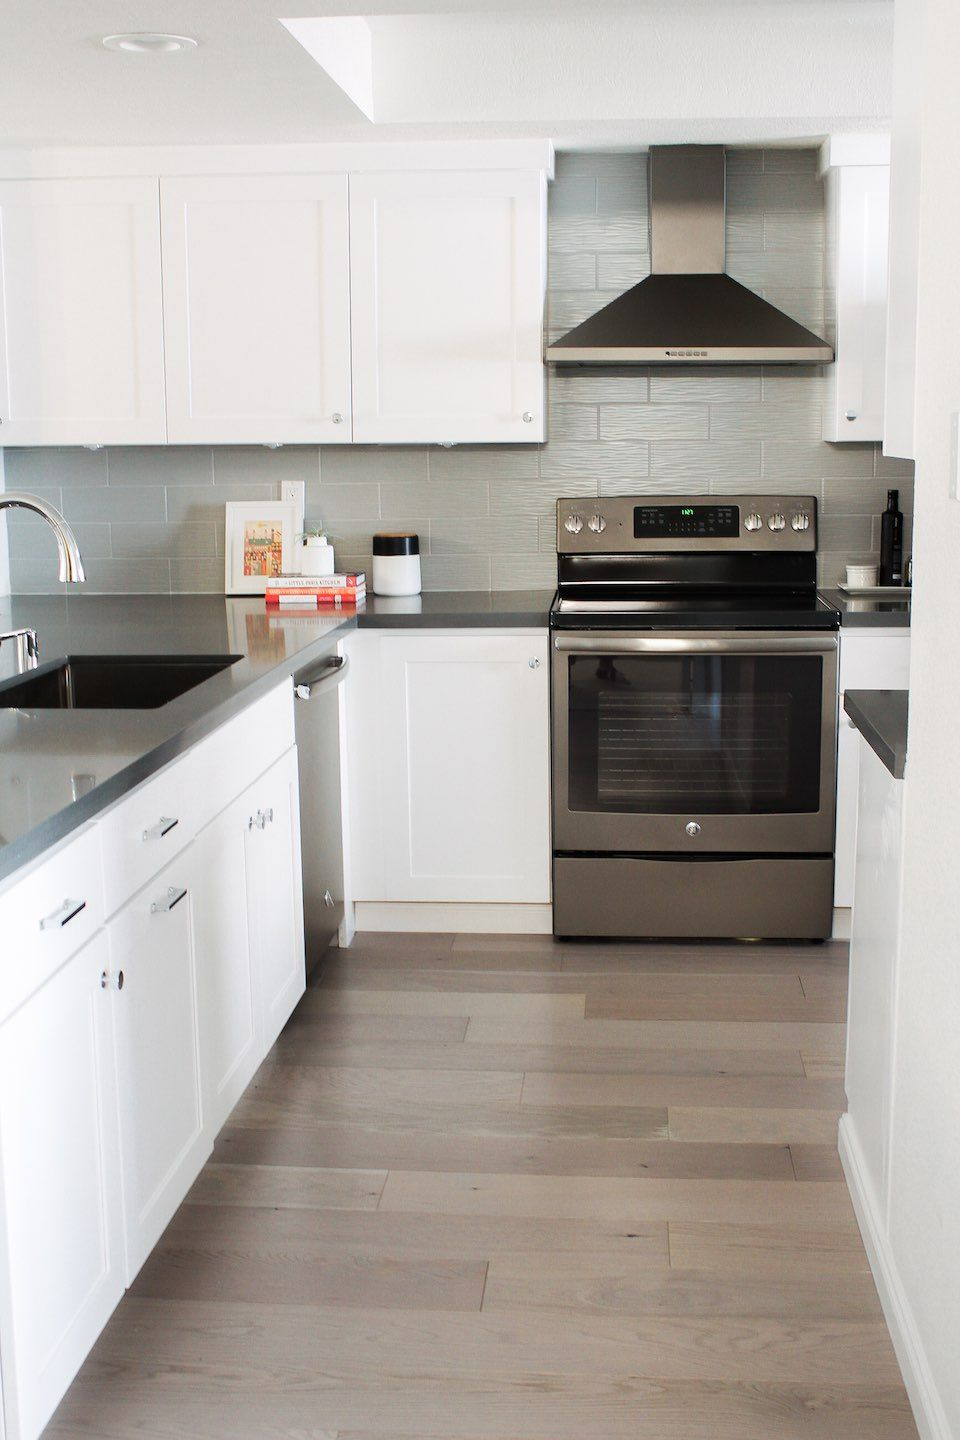 Small Kitchen Remodel By Eggshell Home White Shaker Cabinets Gray Quartz Countertops Ge